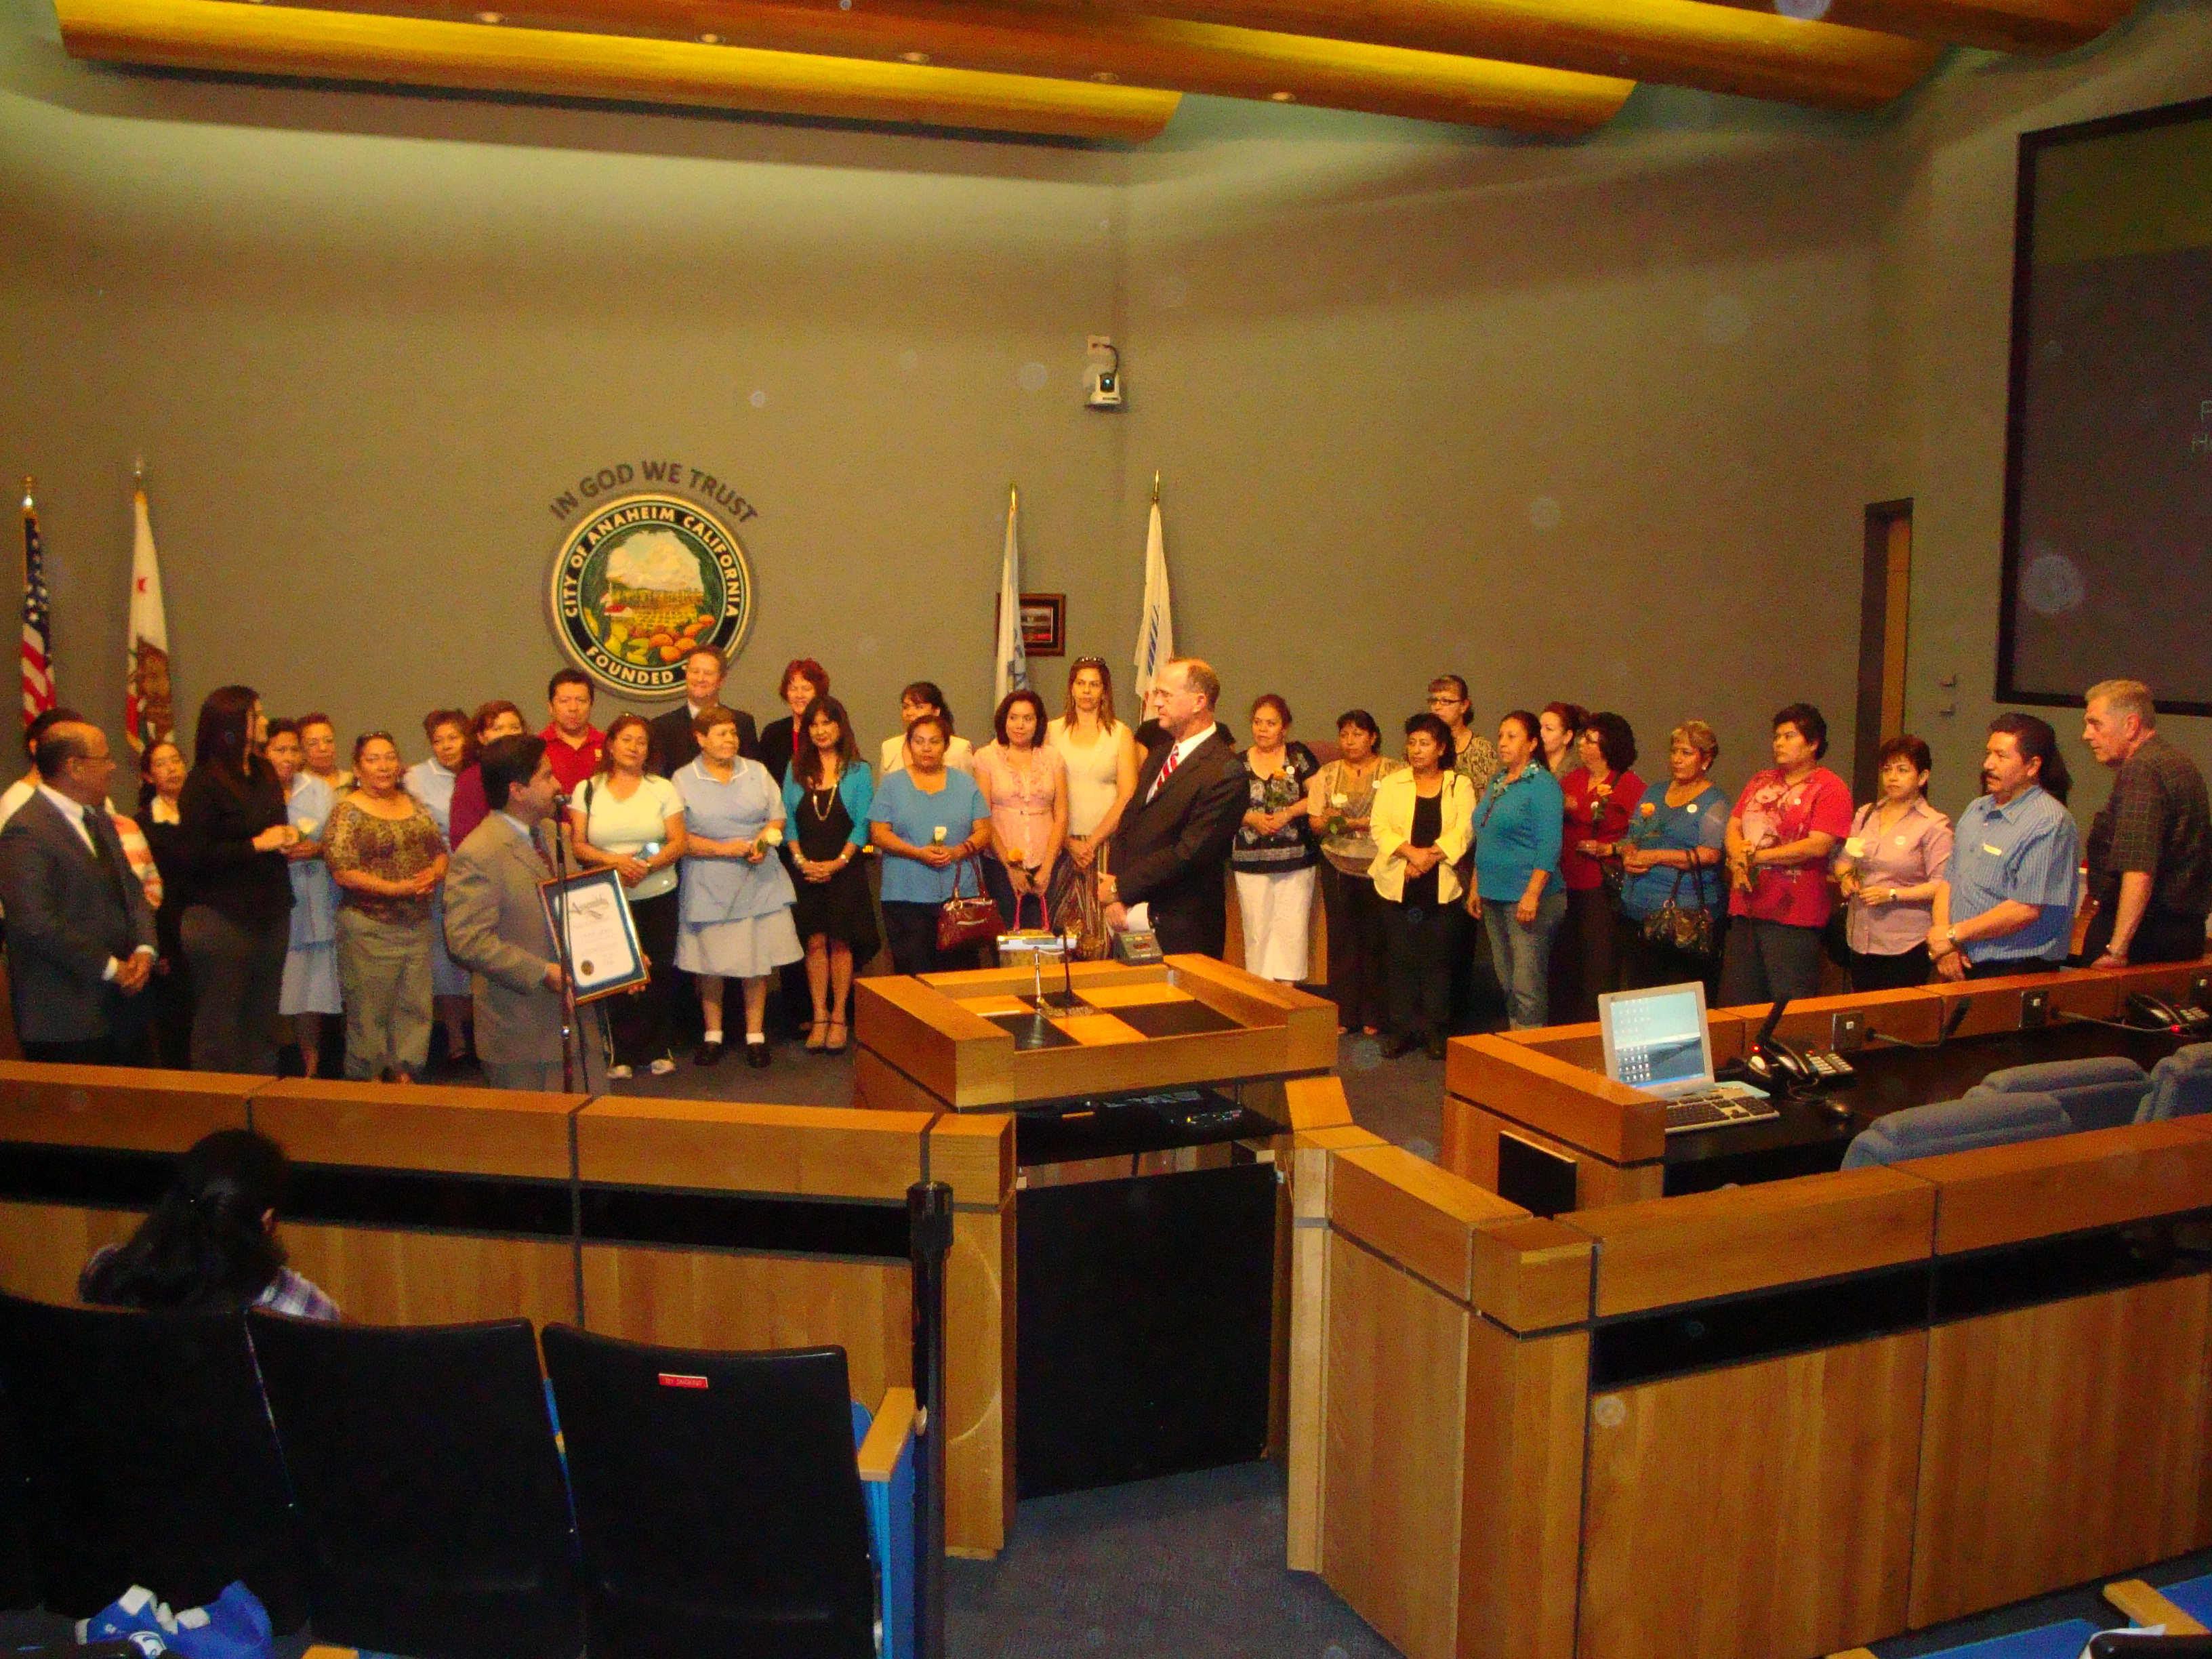 Large group photo at a city council meeting